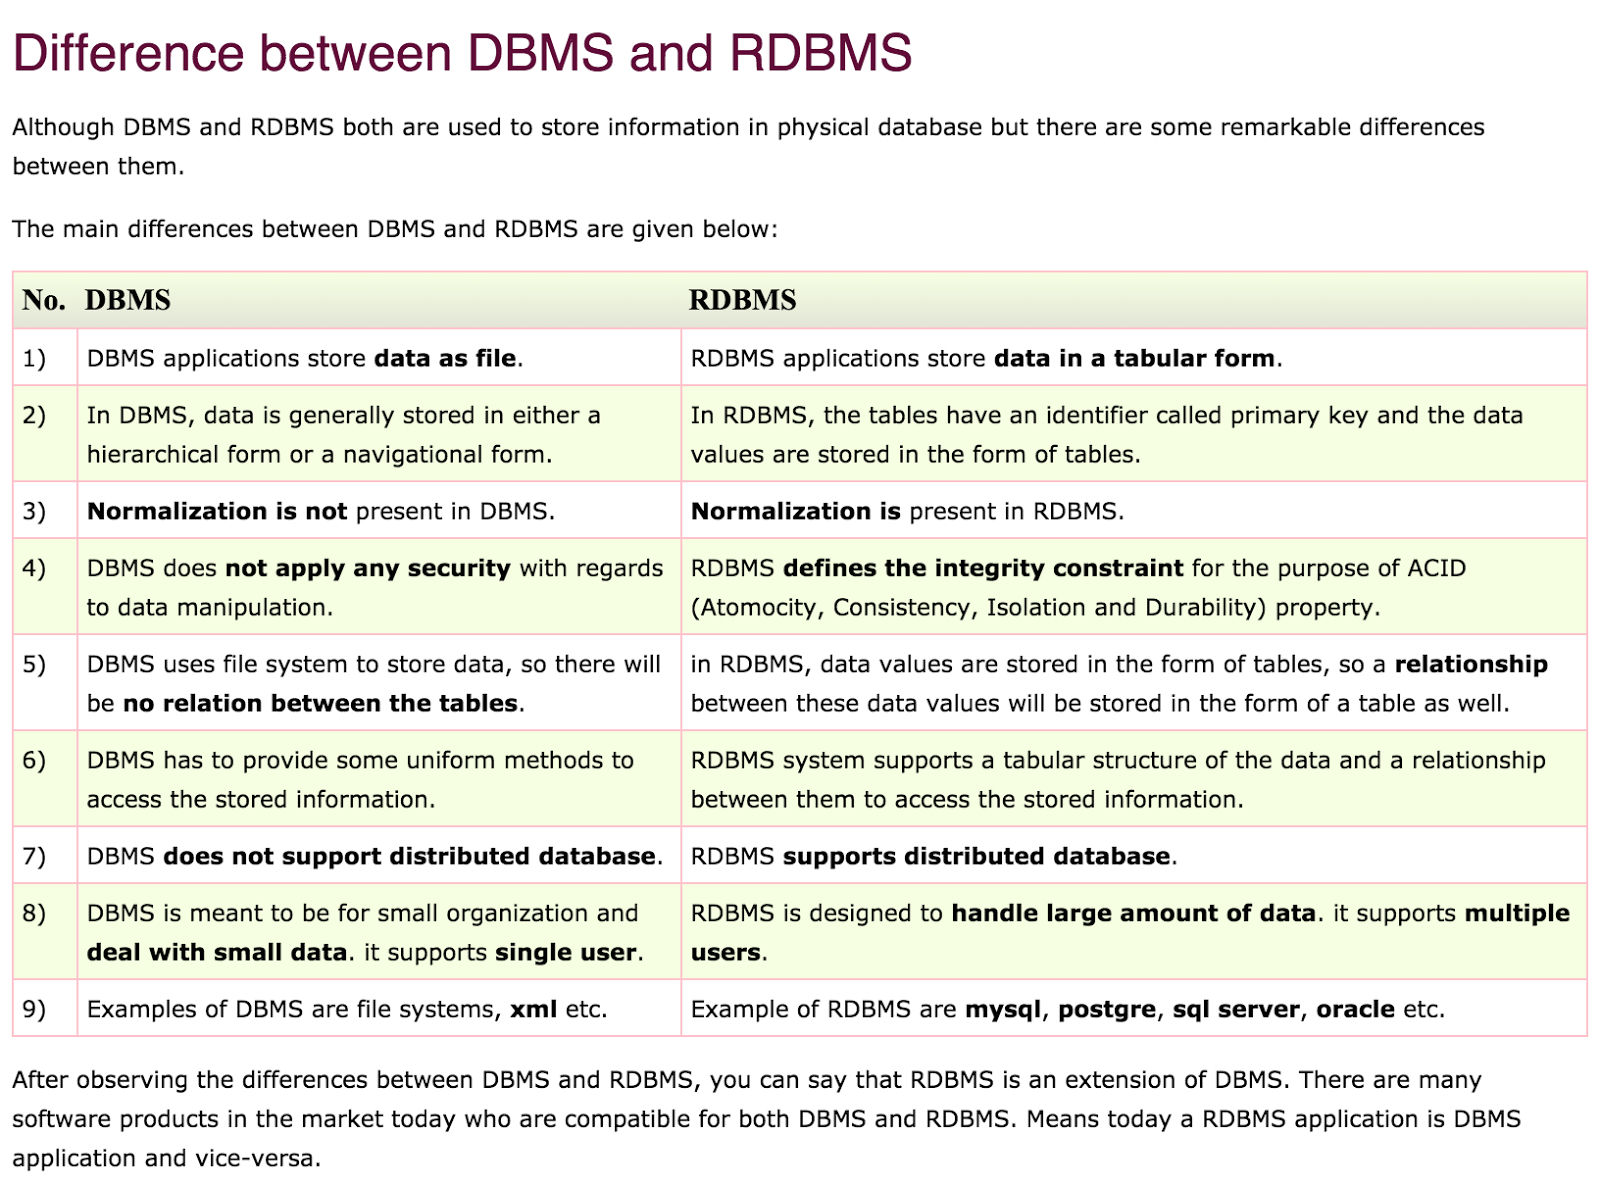 Computer Fundamental Concept And Theory: Differences B/w regarding Weak Entity In Dbms